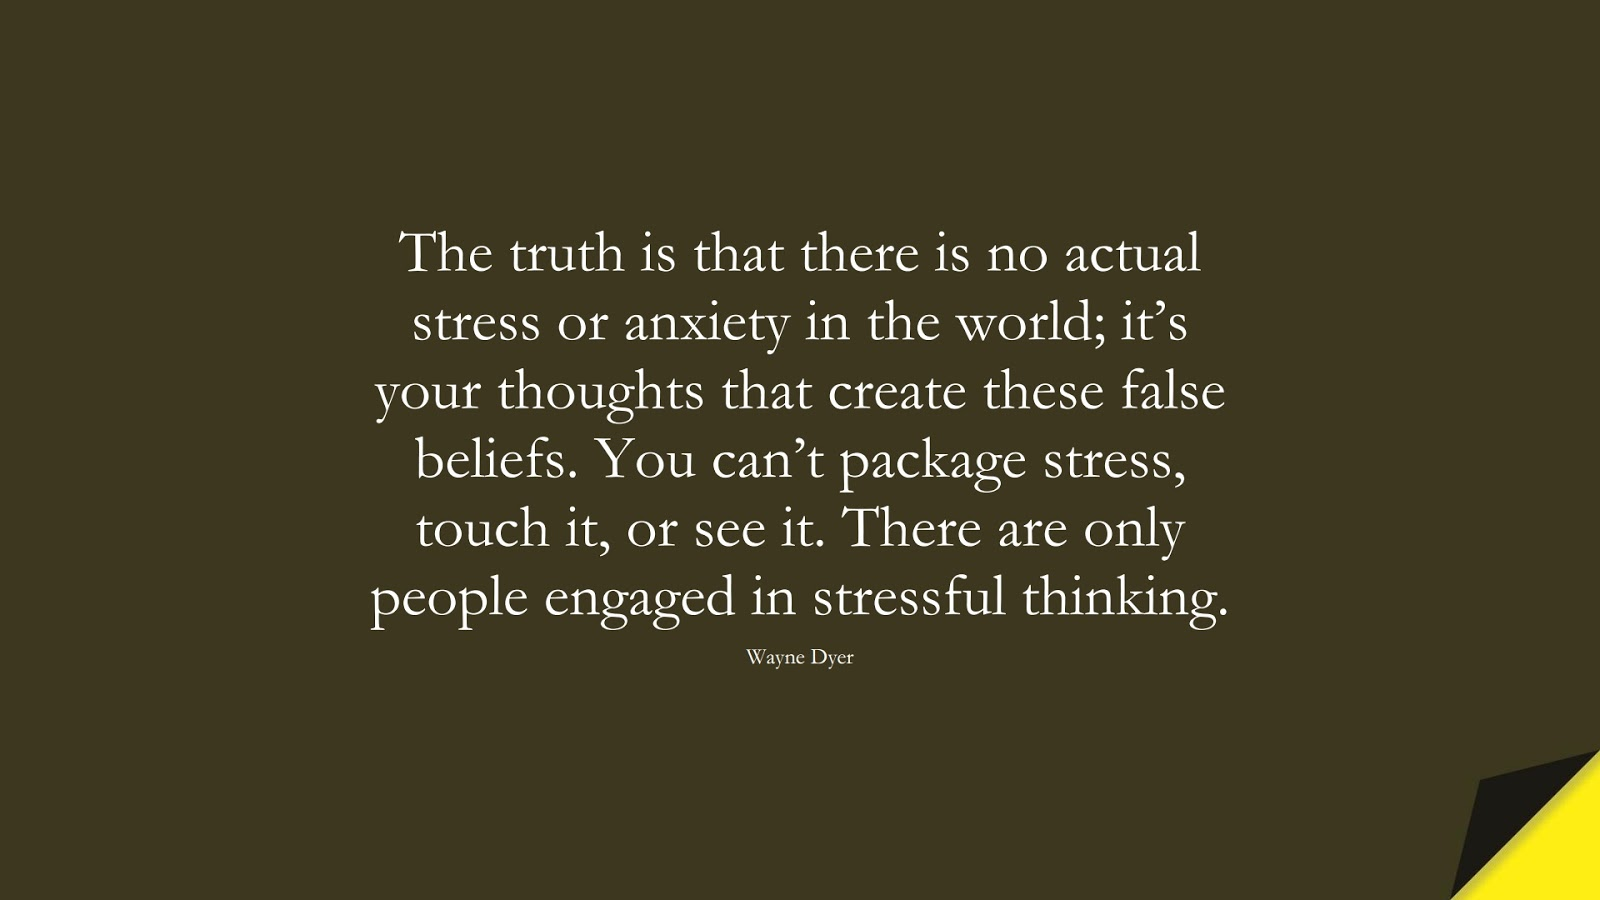 The truth is that there is no actual stress or anxiety in the world; it's your thoughts that create these false beliefs. You can't package stress, touch it, or see it. There are only people engaged in stressful thinking. (Wayne Dyer);  #StressQuotes